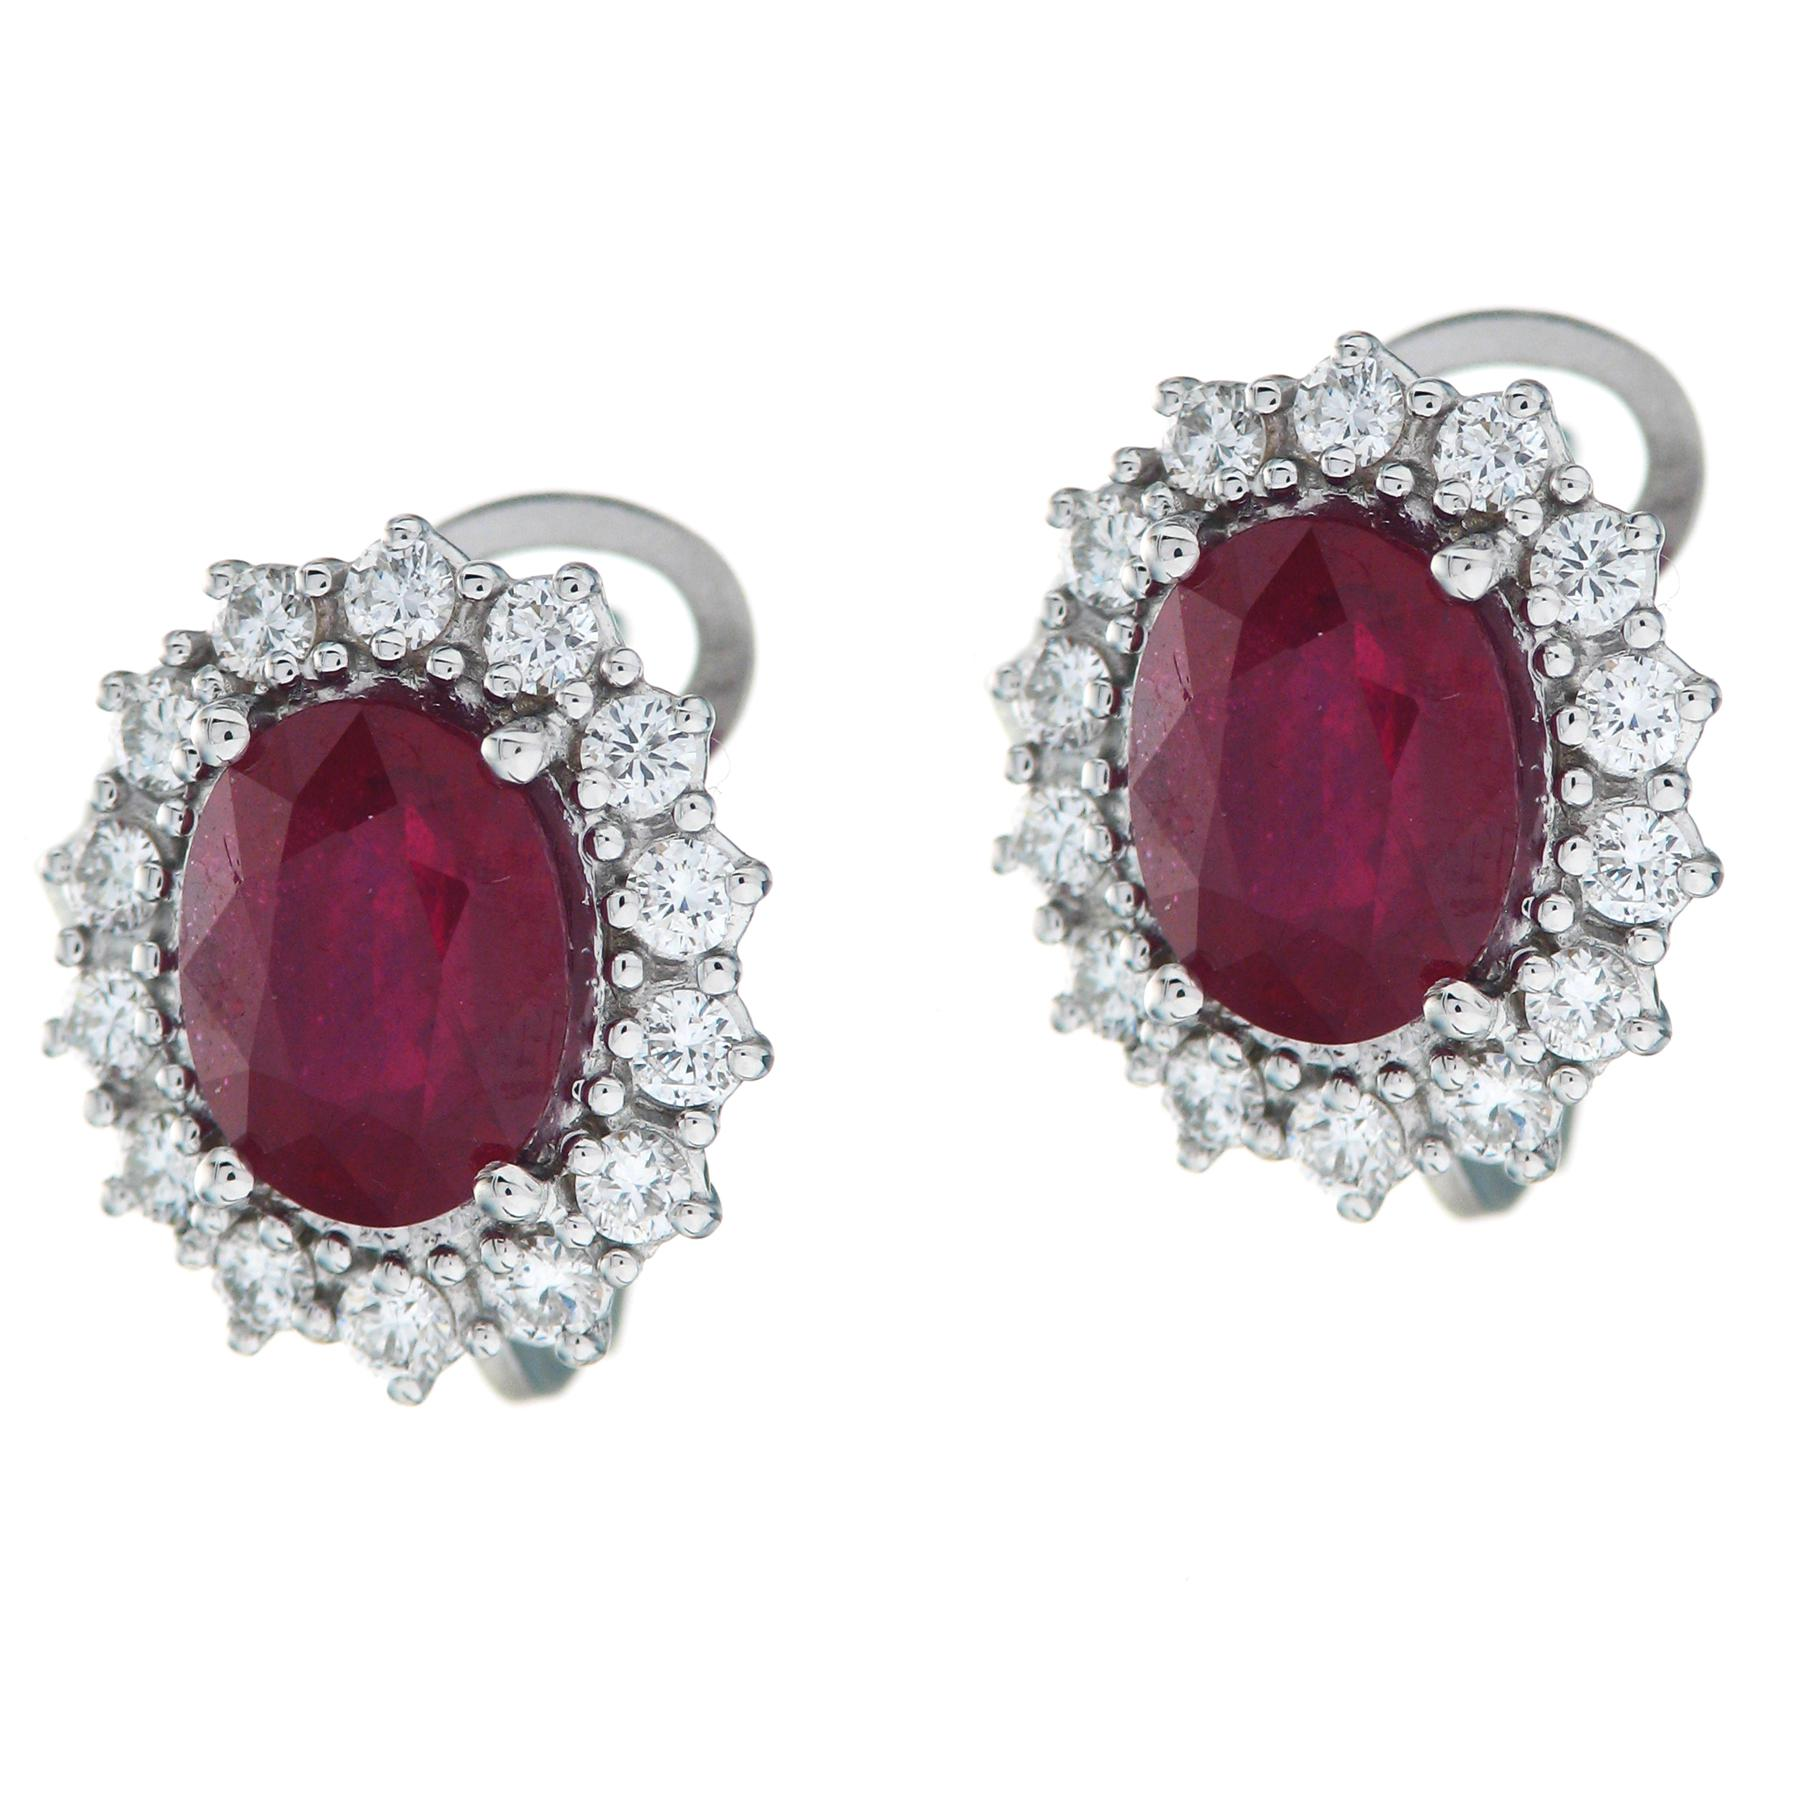 Gival 18ct White Gold Diamond & Ruby Earrings 3947/O